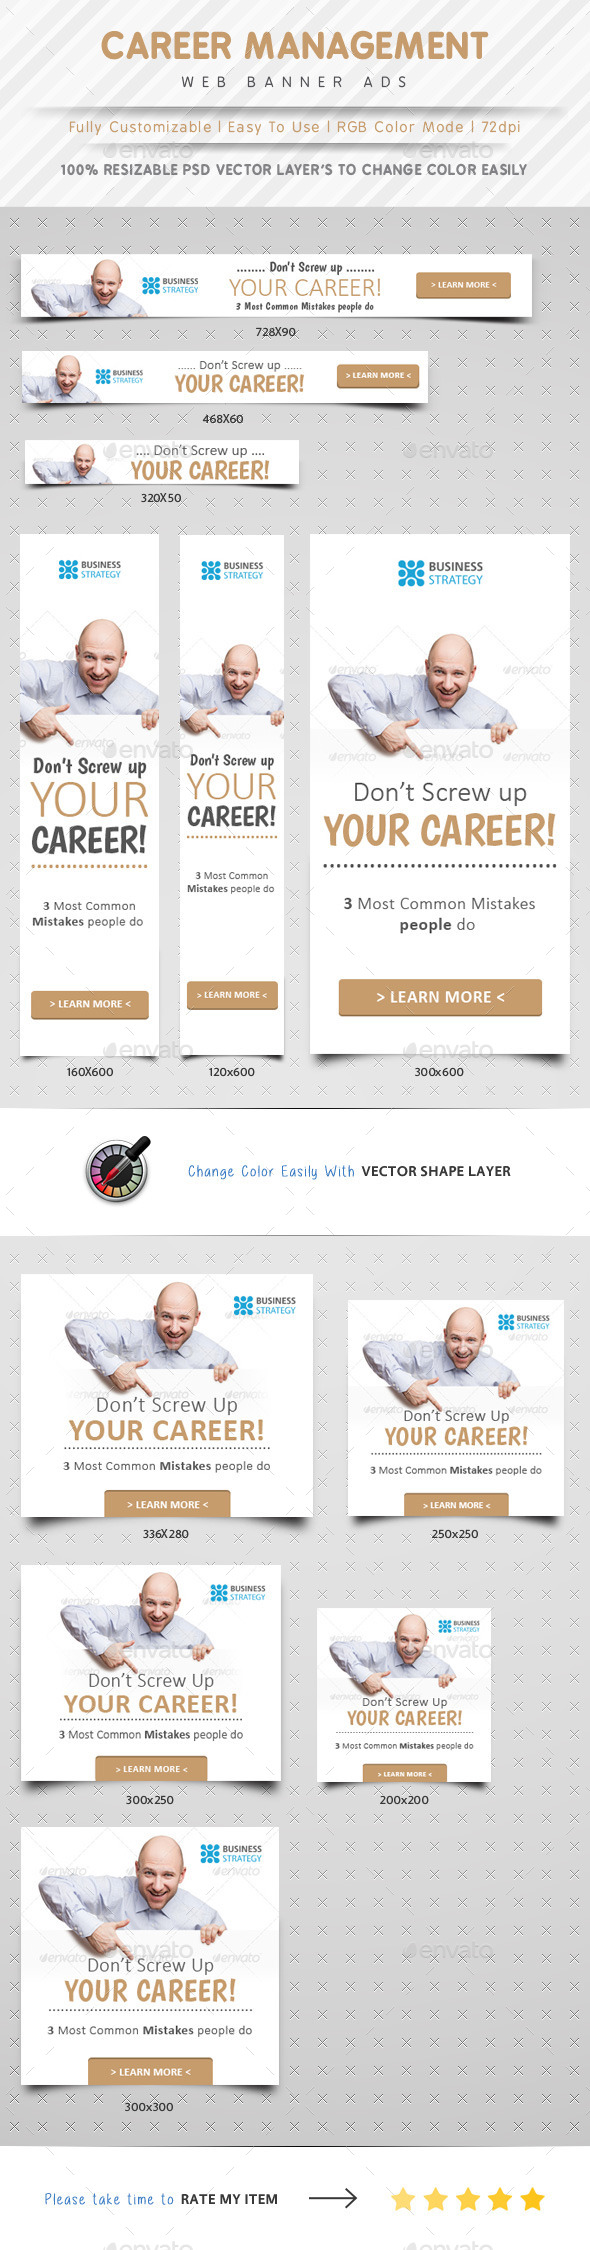 Career Management Web Banner Ads